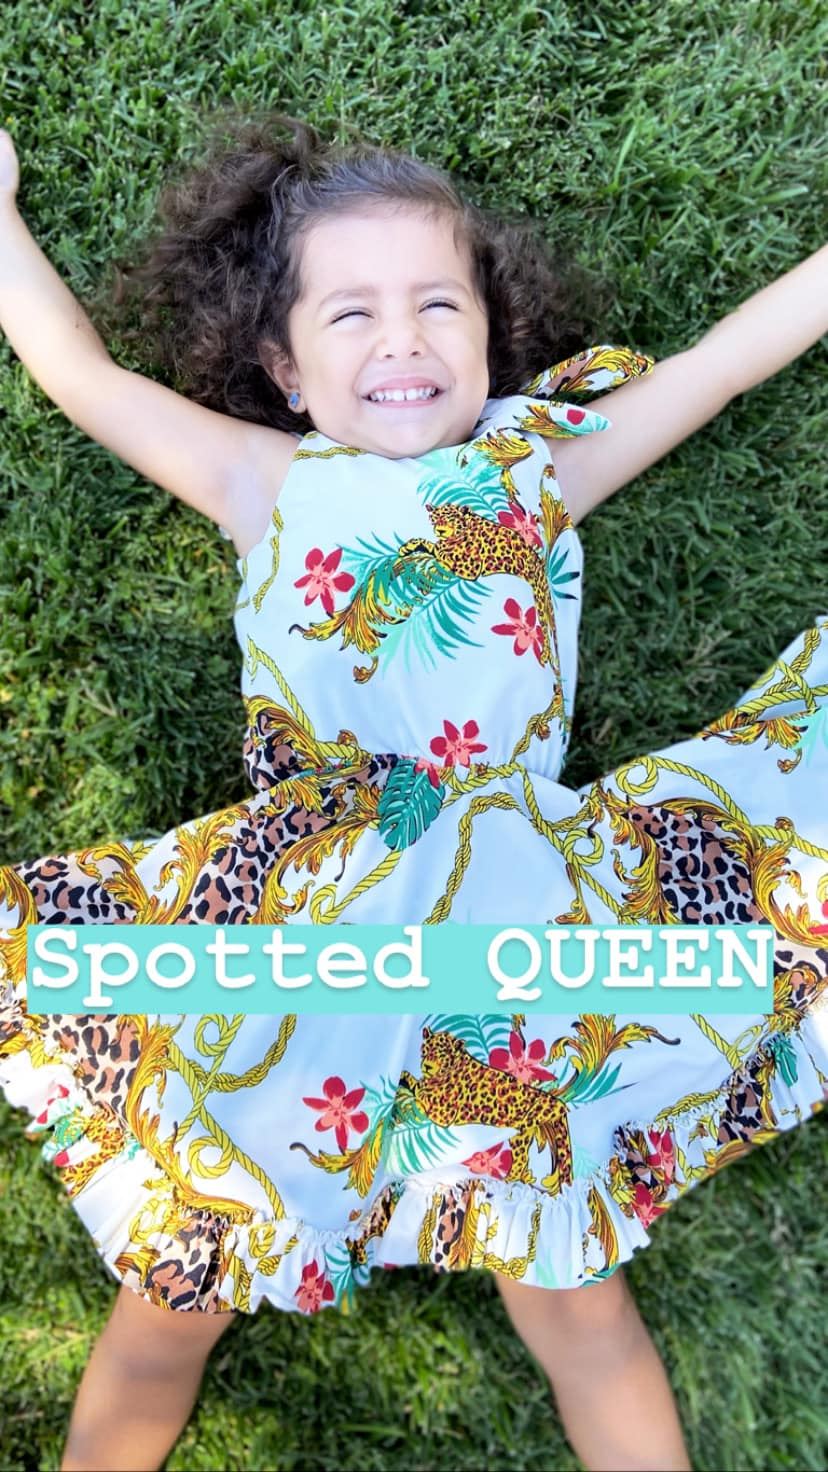 Spotted QUEEN